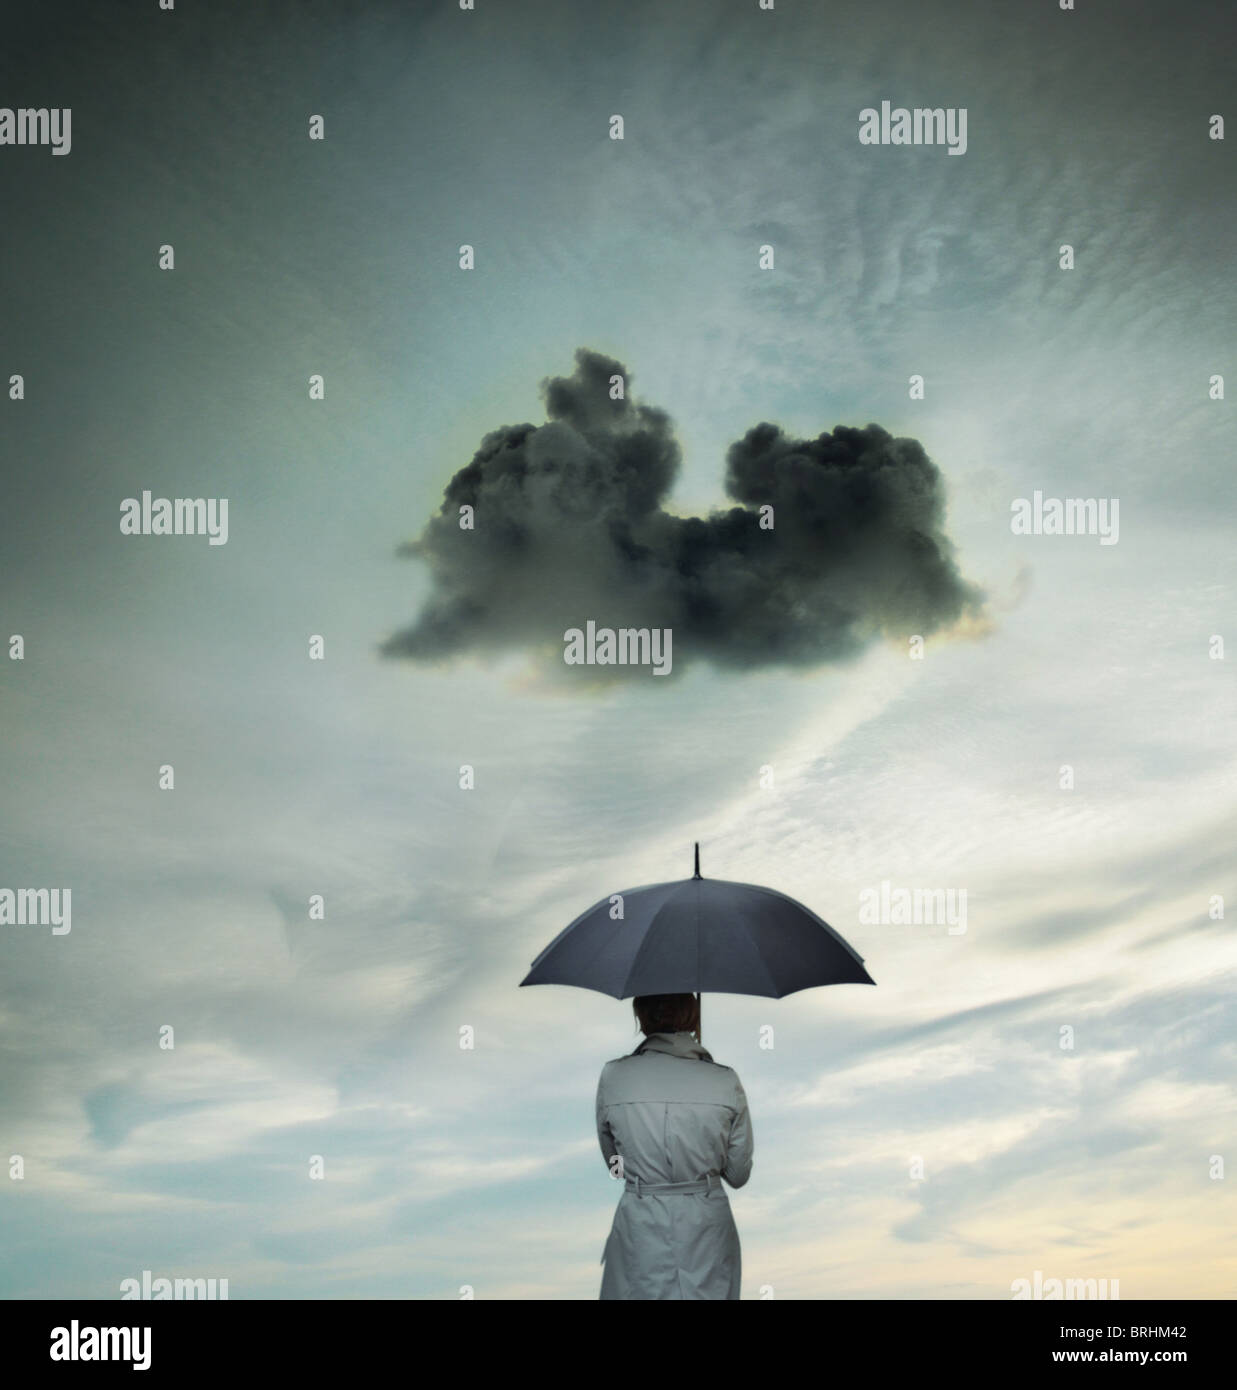 Femme d'affaires avec un parapluie Photo Stock